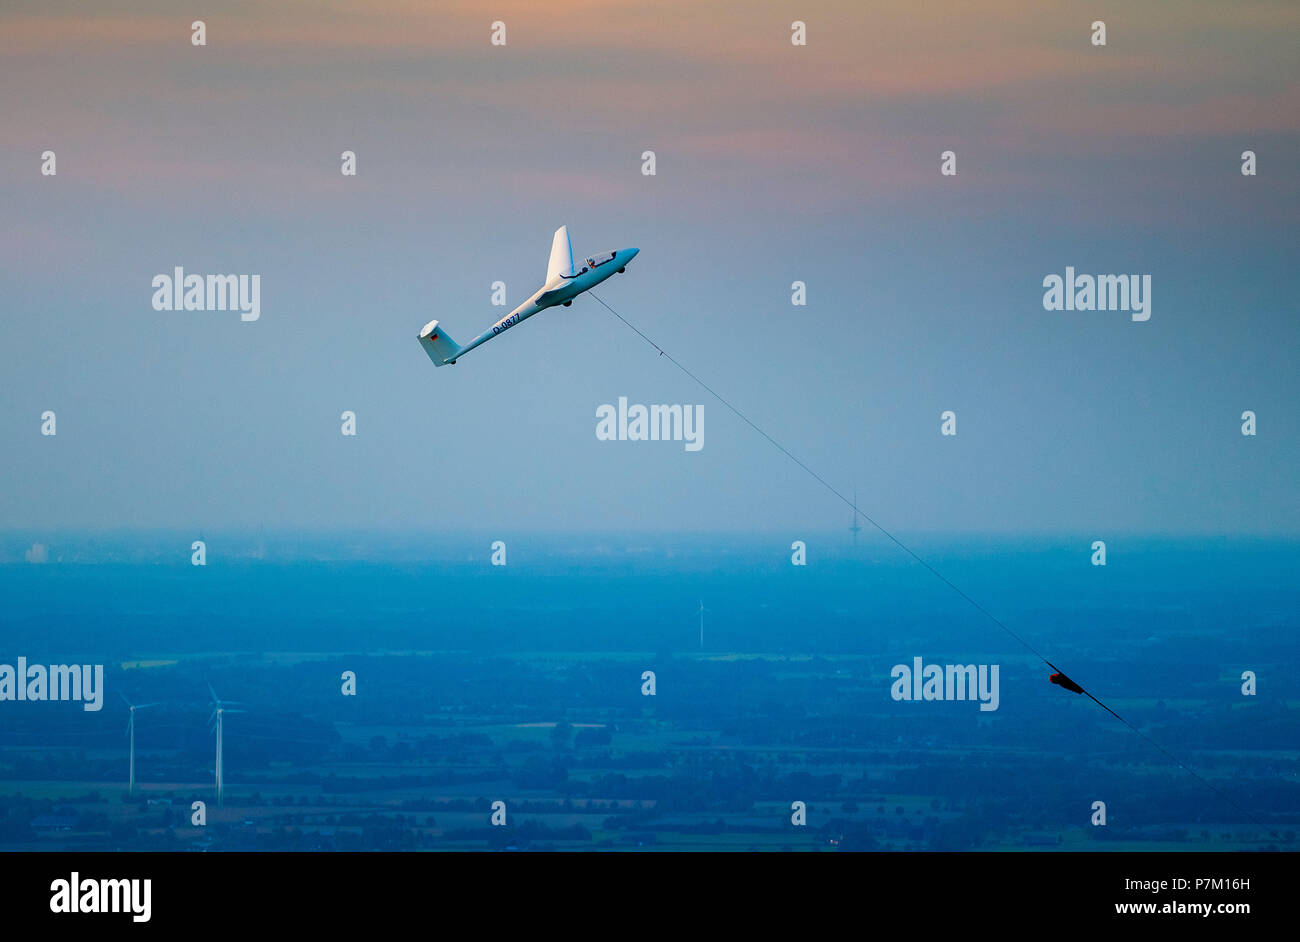 Glider, take-off over Hamm, winch launch, take-off rope, ASW21 training two-seat glider flown as single-seat glider, Hamm, Ruhr area, North Rhine-Westphalia, Germany - Stock Image